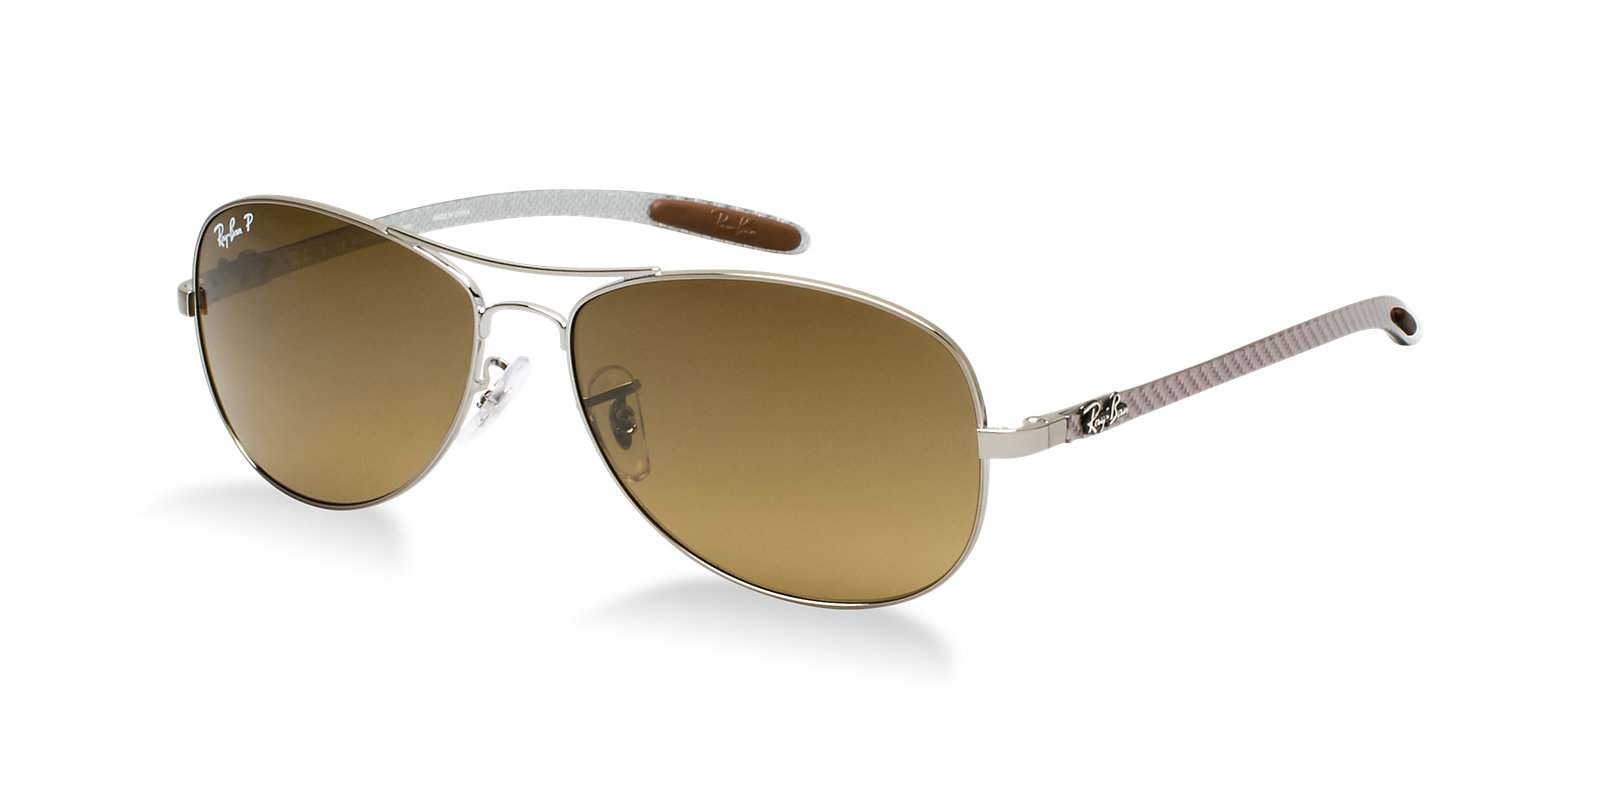 Ray-Ban-Sunglasses-for-Men (26)